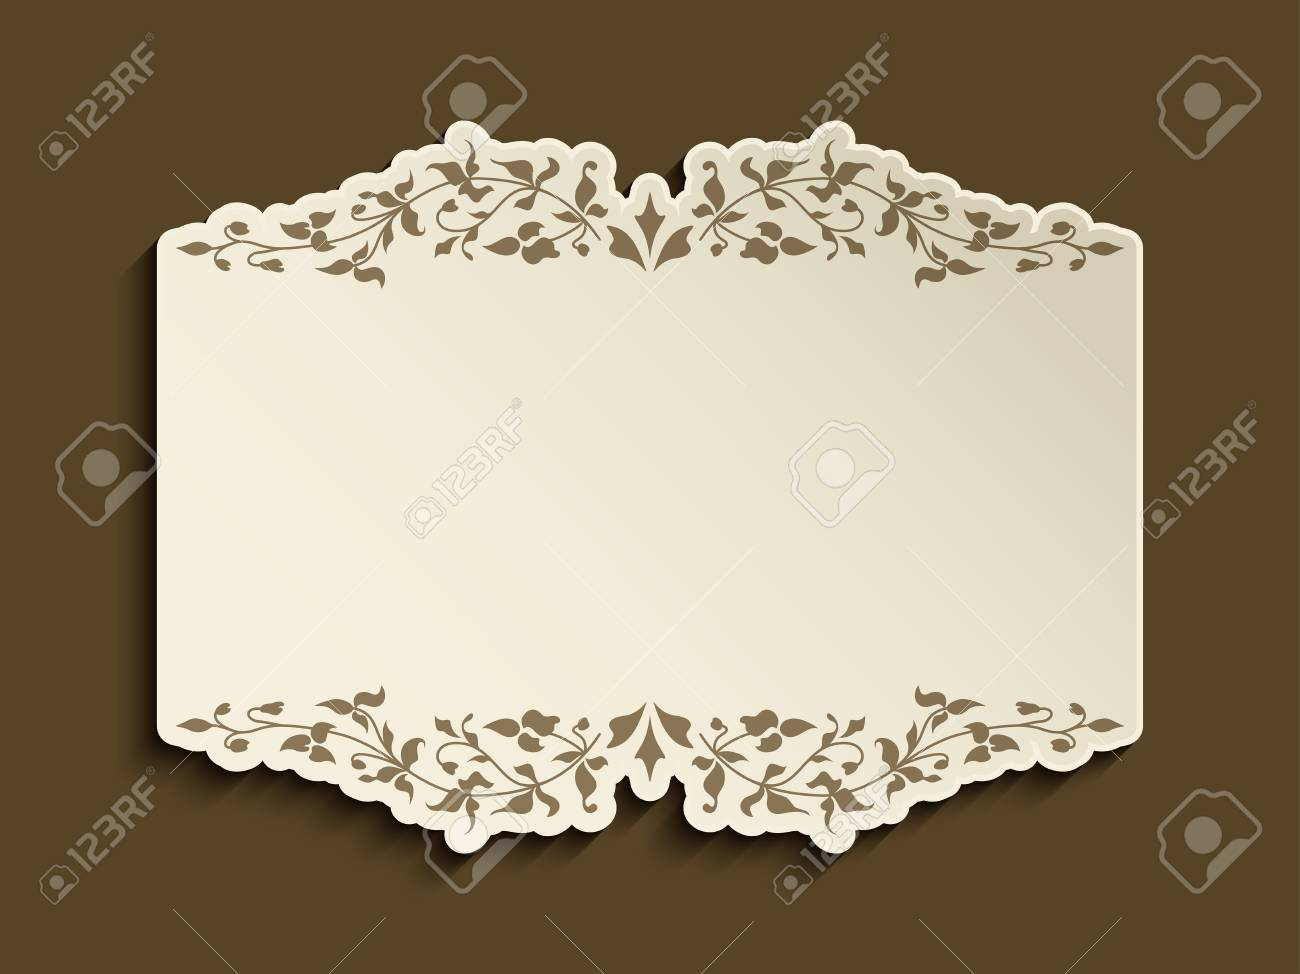 gold frame border vector.  Gold Vector  Vintage Gold Frame With Flourish Decoration And Cutout Paper Border  Vector Wedding Announcement Or Invitation Card Design Inside Gold Frame Border